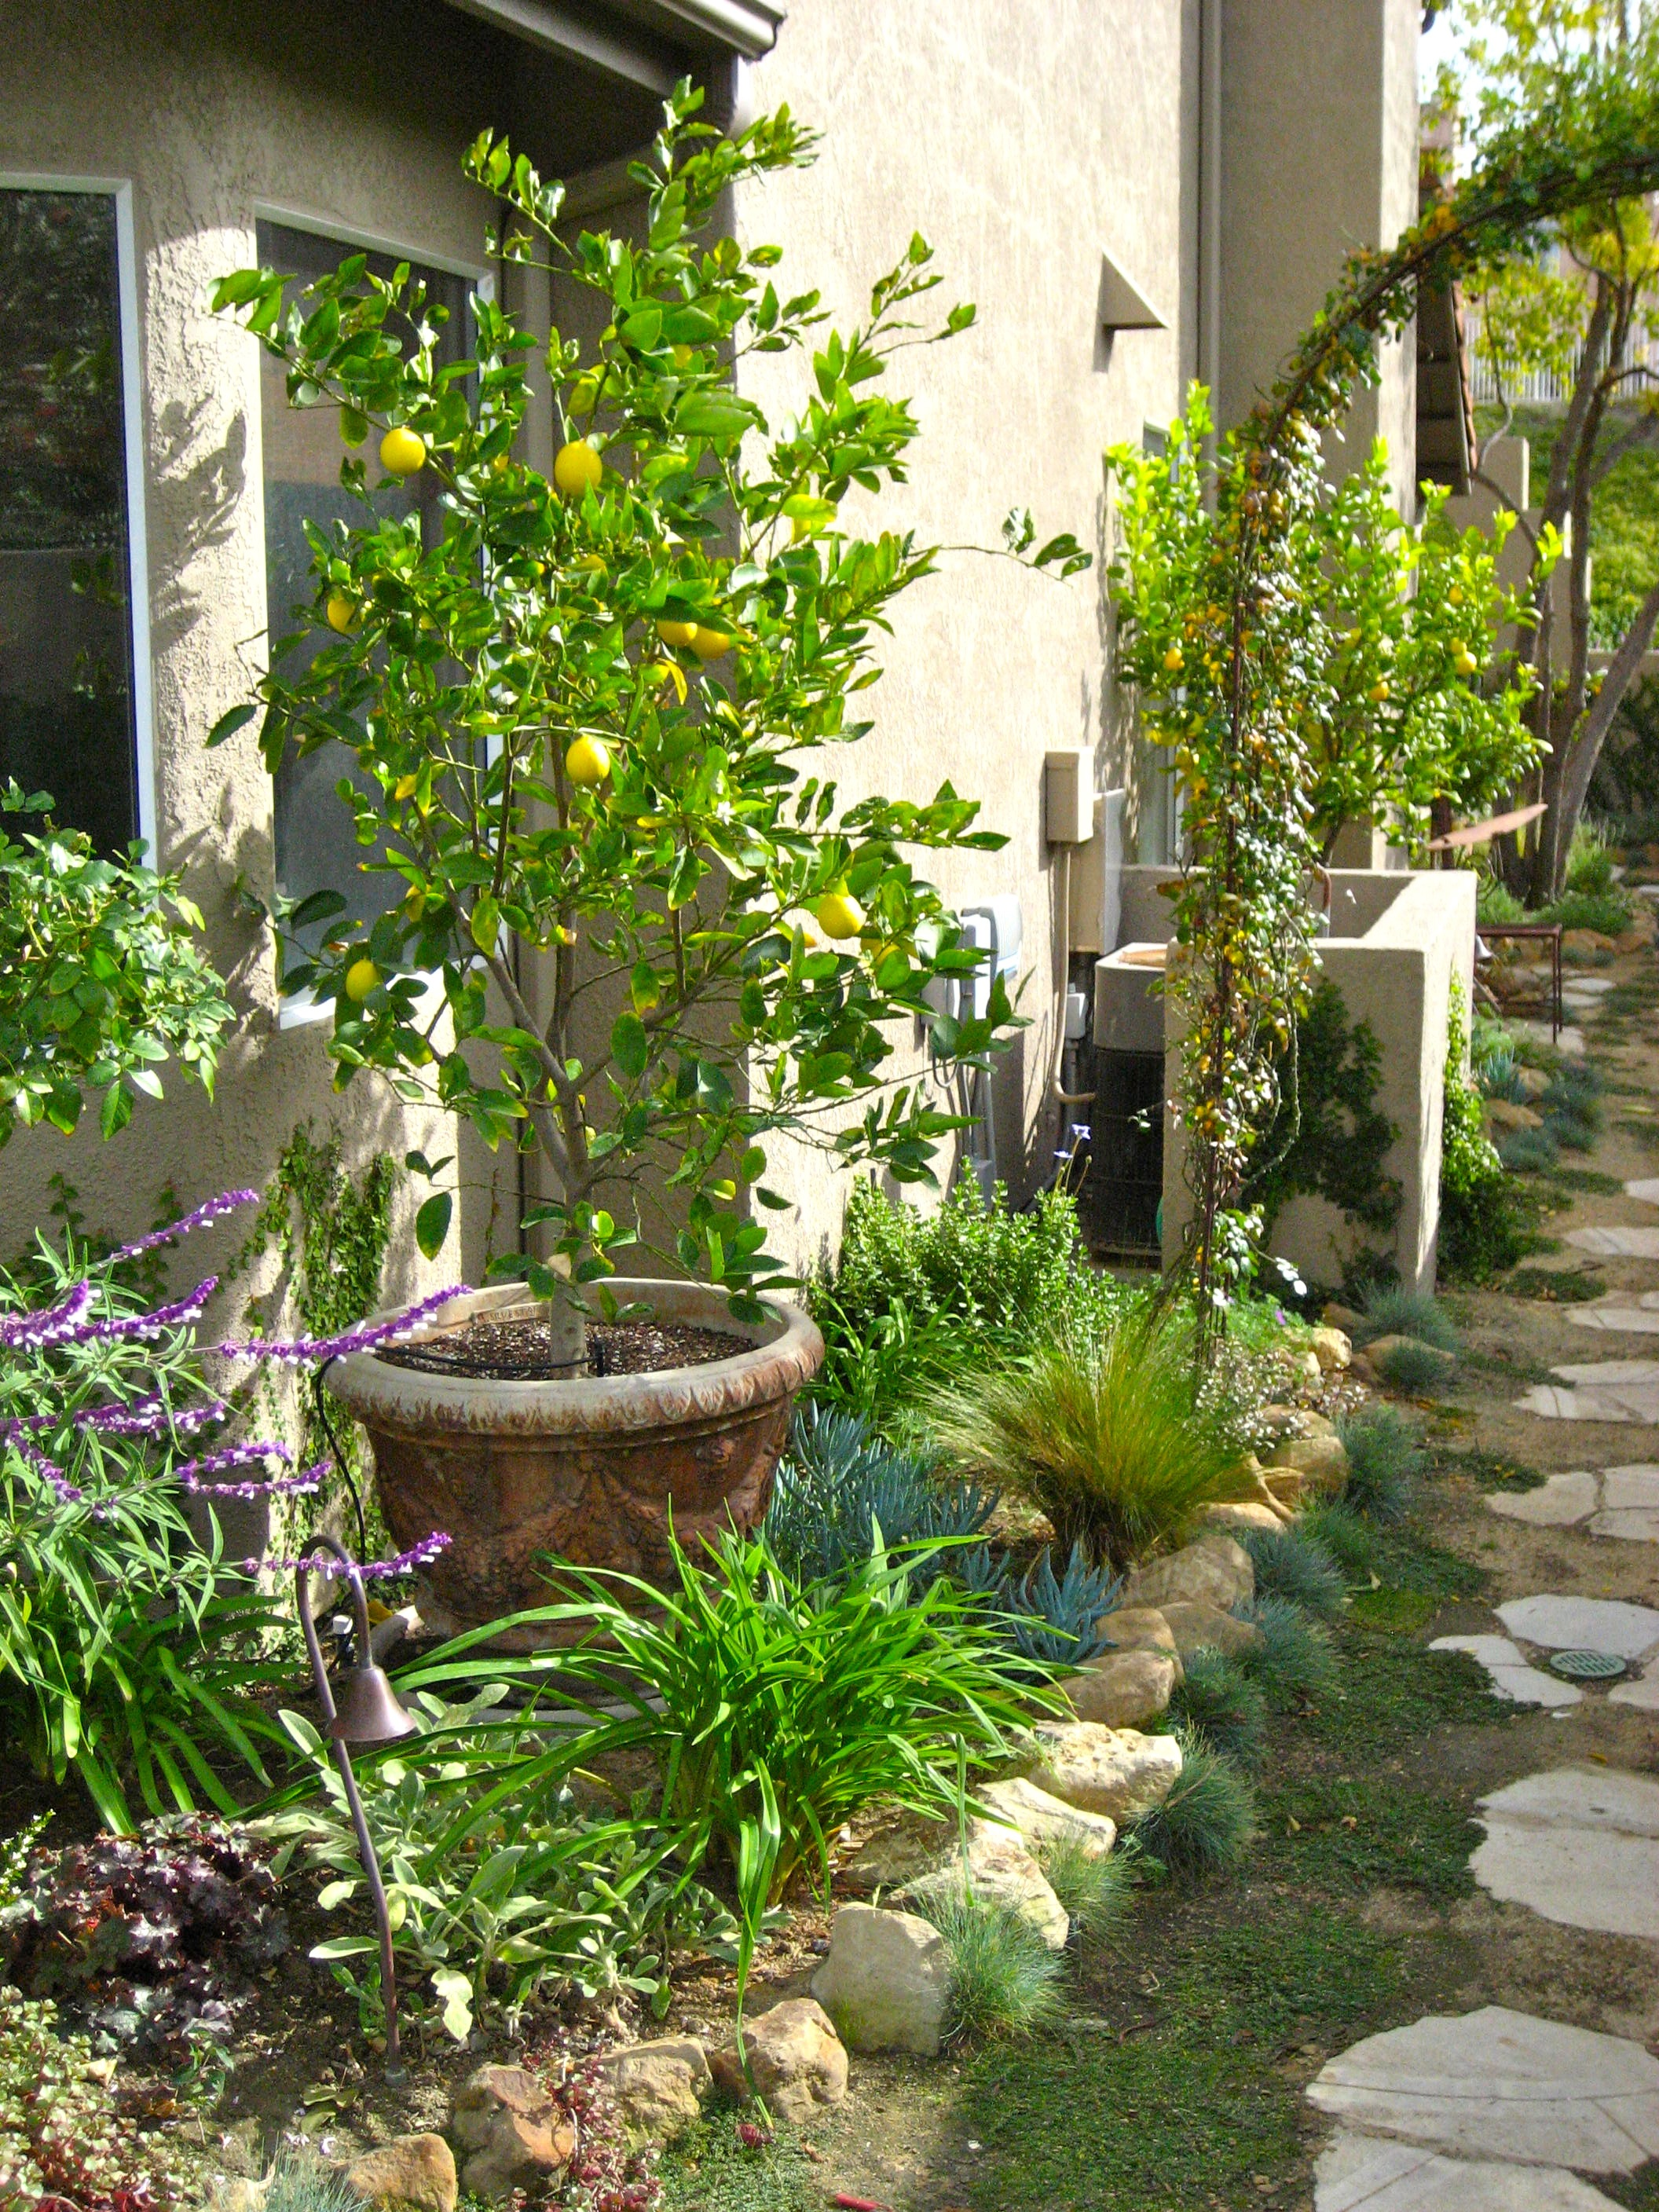 28 Tips For A Small Garden: Dwarf Citrus Trees Planted In Containers Within The Small